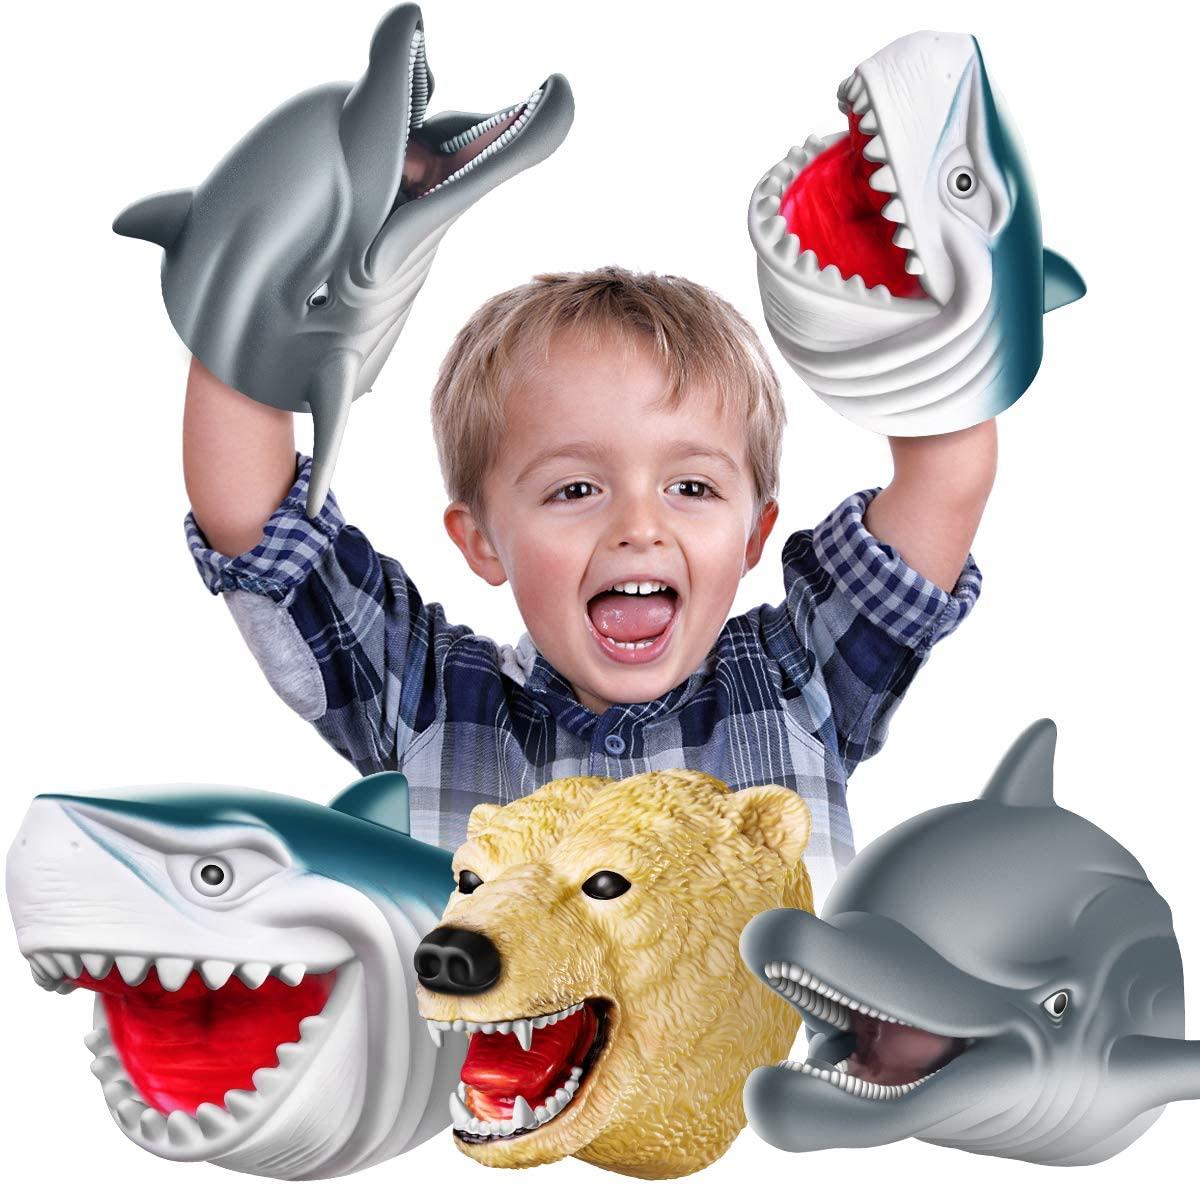 Geyiie Shark Hand Puppets, Kids Hand Puppets Baby Shark Dolphin White Soft Rubber, Sea Animal Head Role Toys Gift for Boys Girls Toddlers Halloween Party Favor , 3 Pack